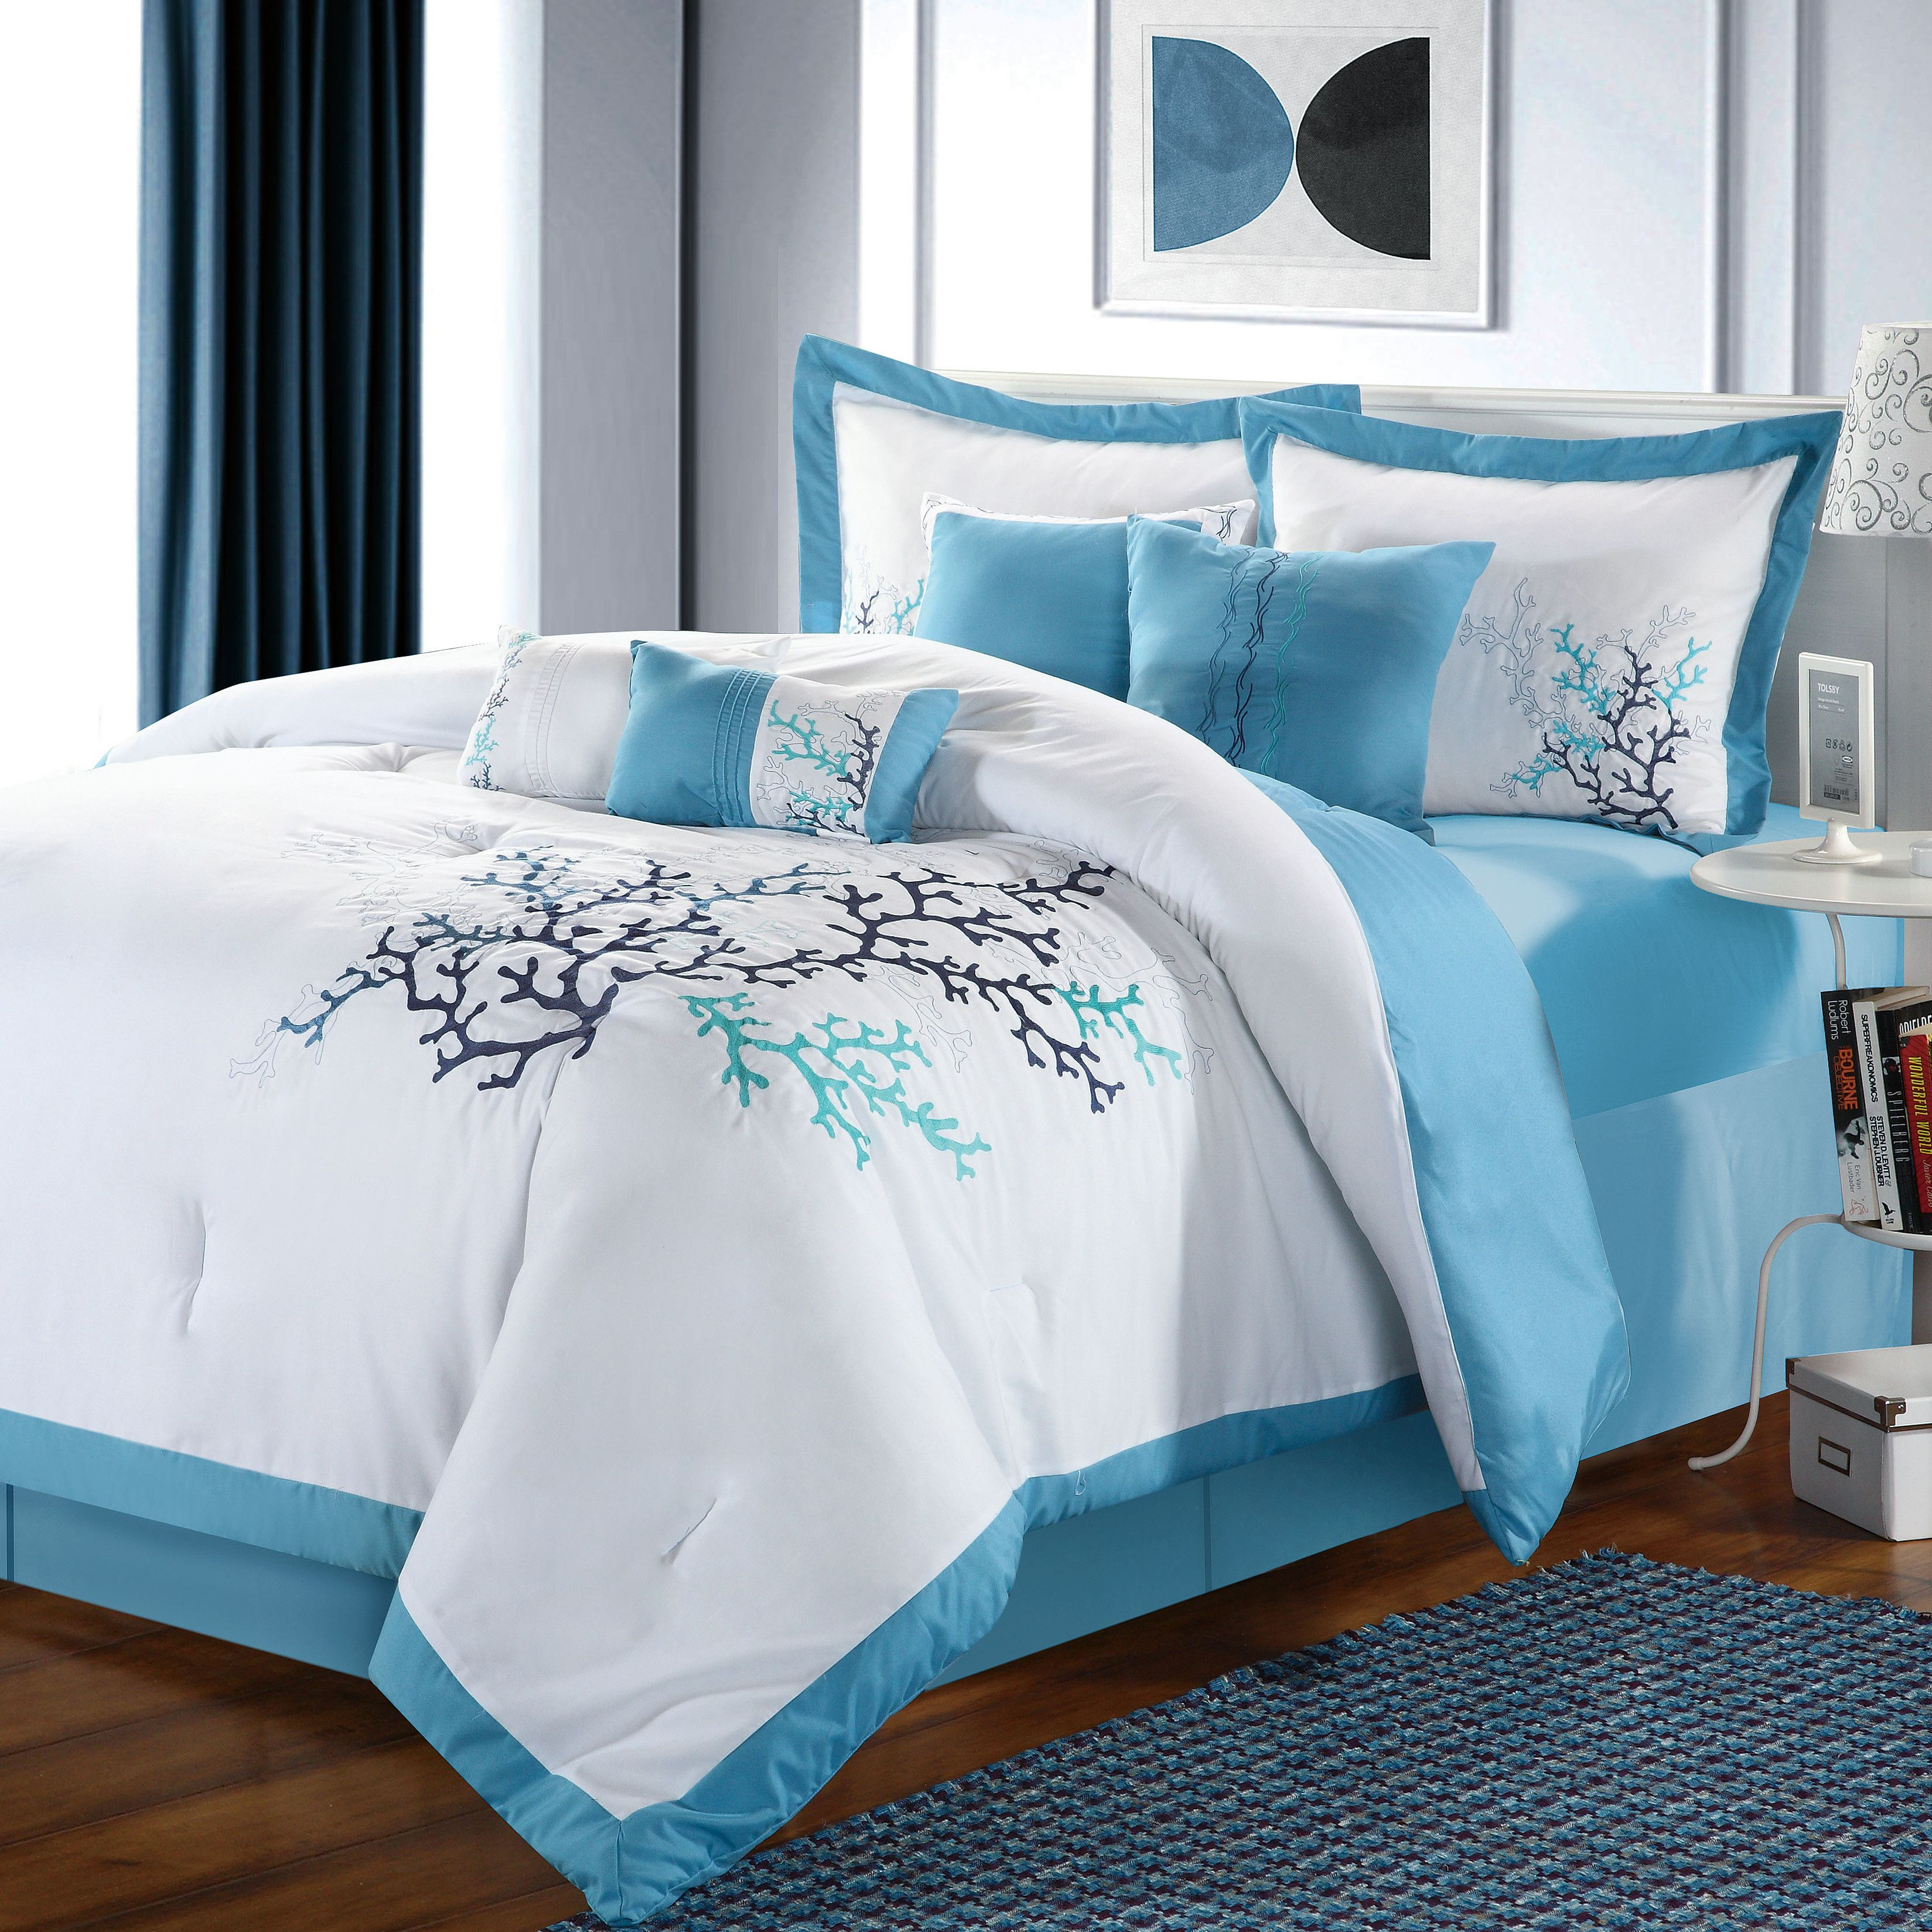 Chic Home Coral Reef 8 Piece Comforter Set Comforter Sets Beach Bedding Sets Luxury Bedding Set